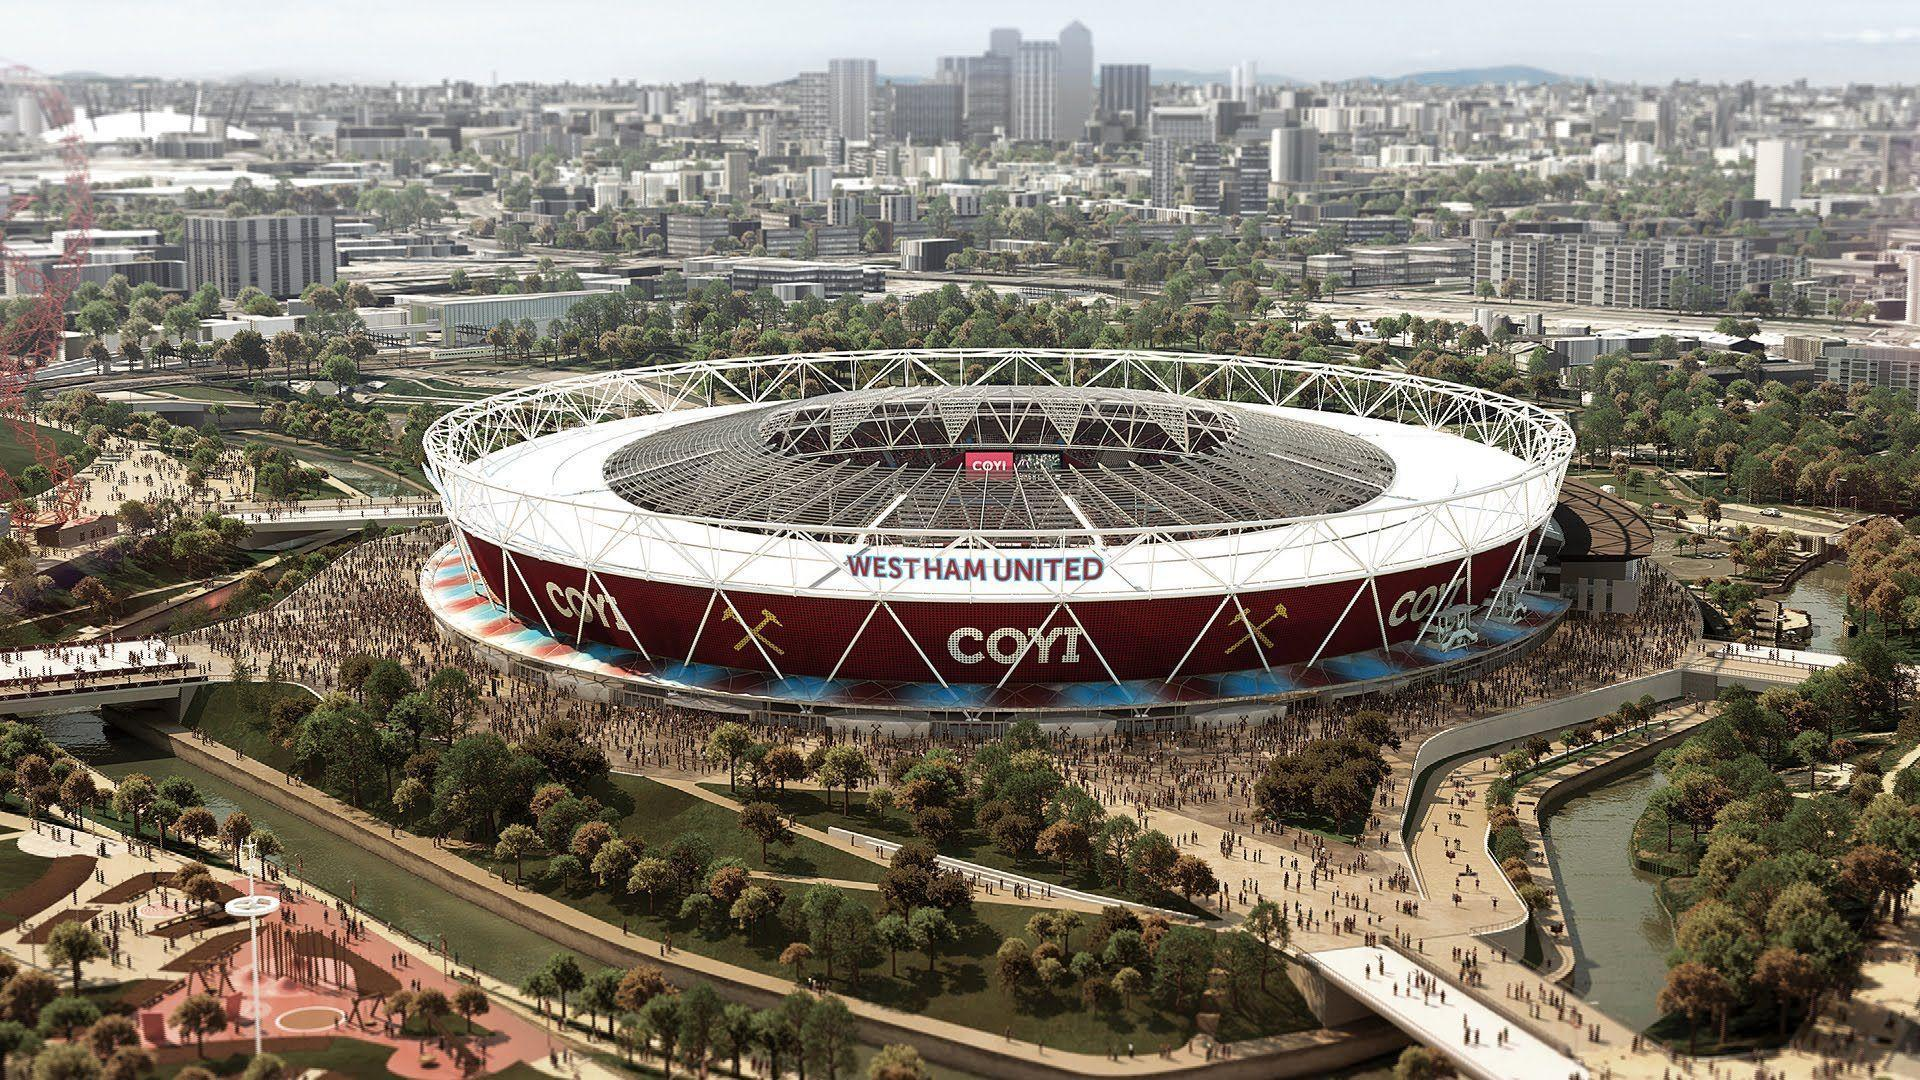 West Ham United Wallpapers - Wallpaper Cave